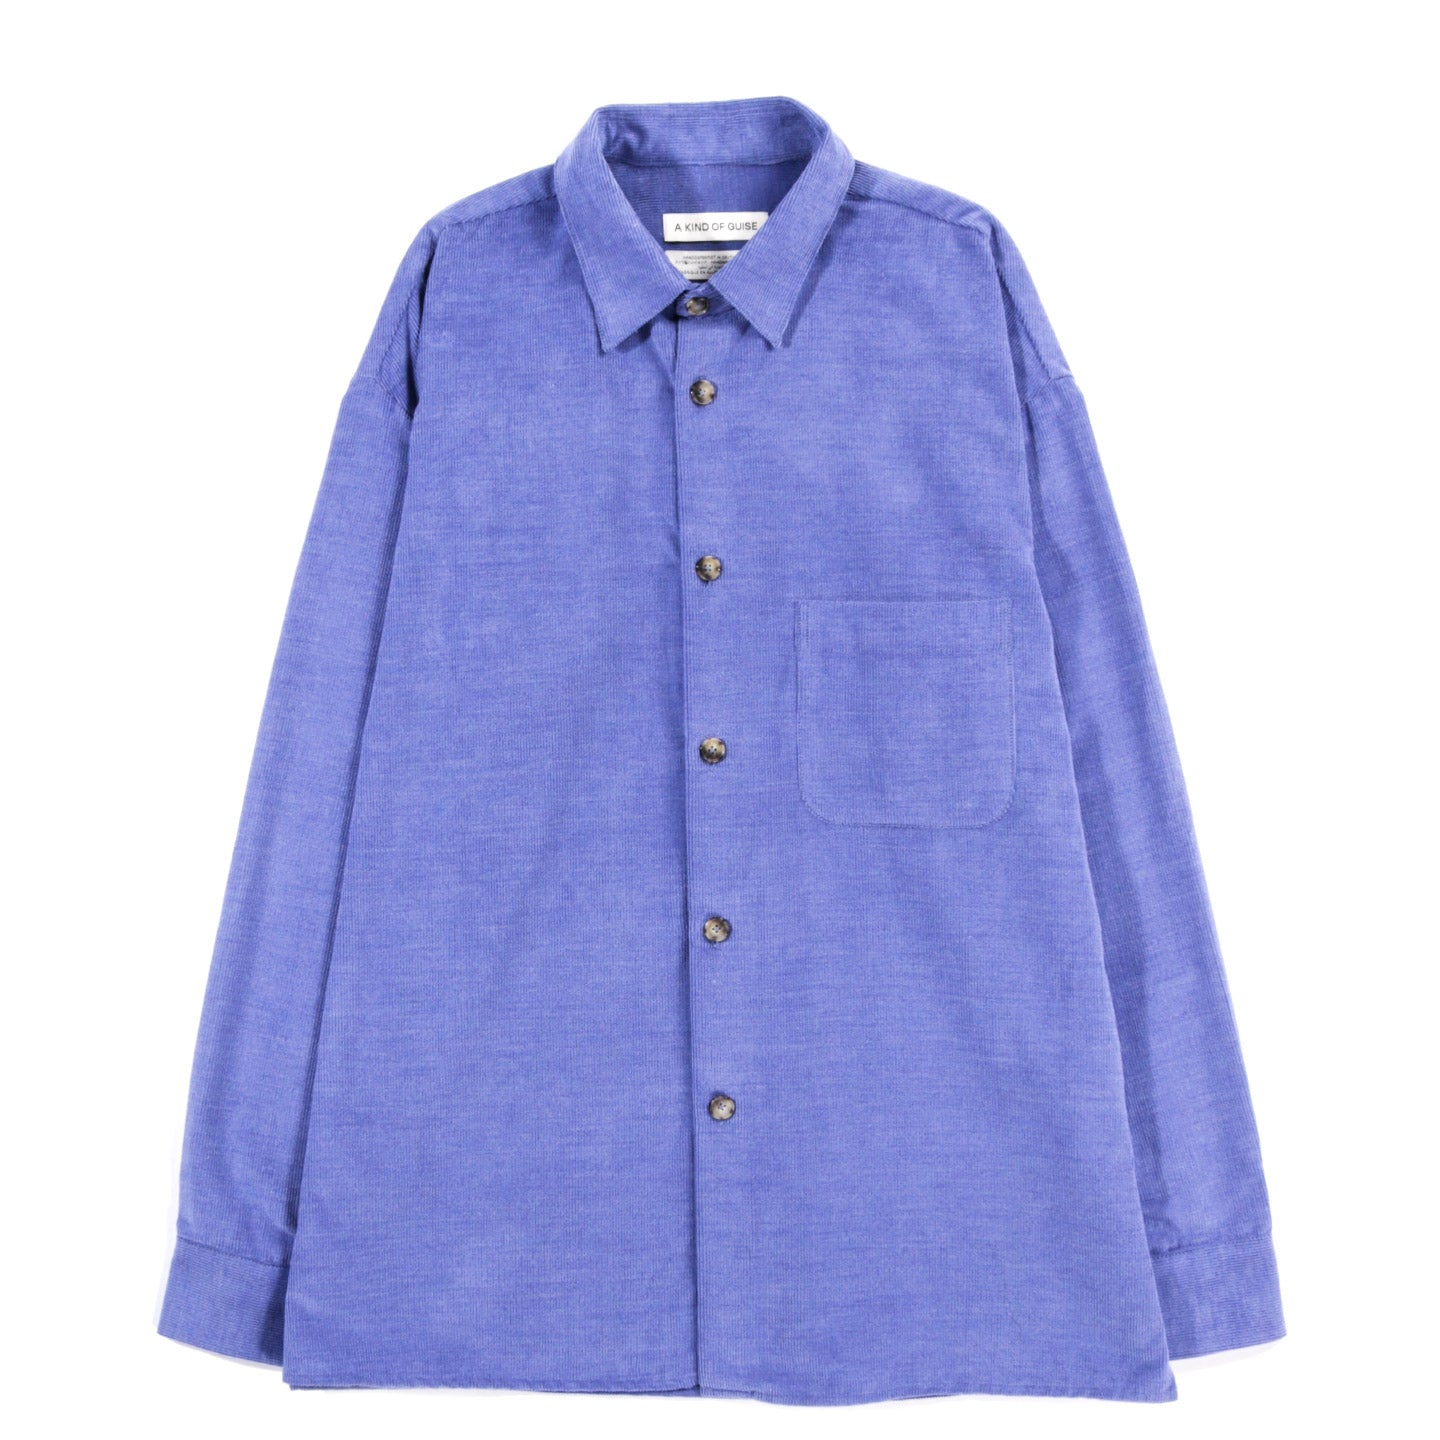 A KIND OF GUISE GUSTO SHIRT BLUE LAVENDER